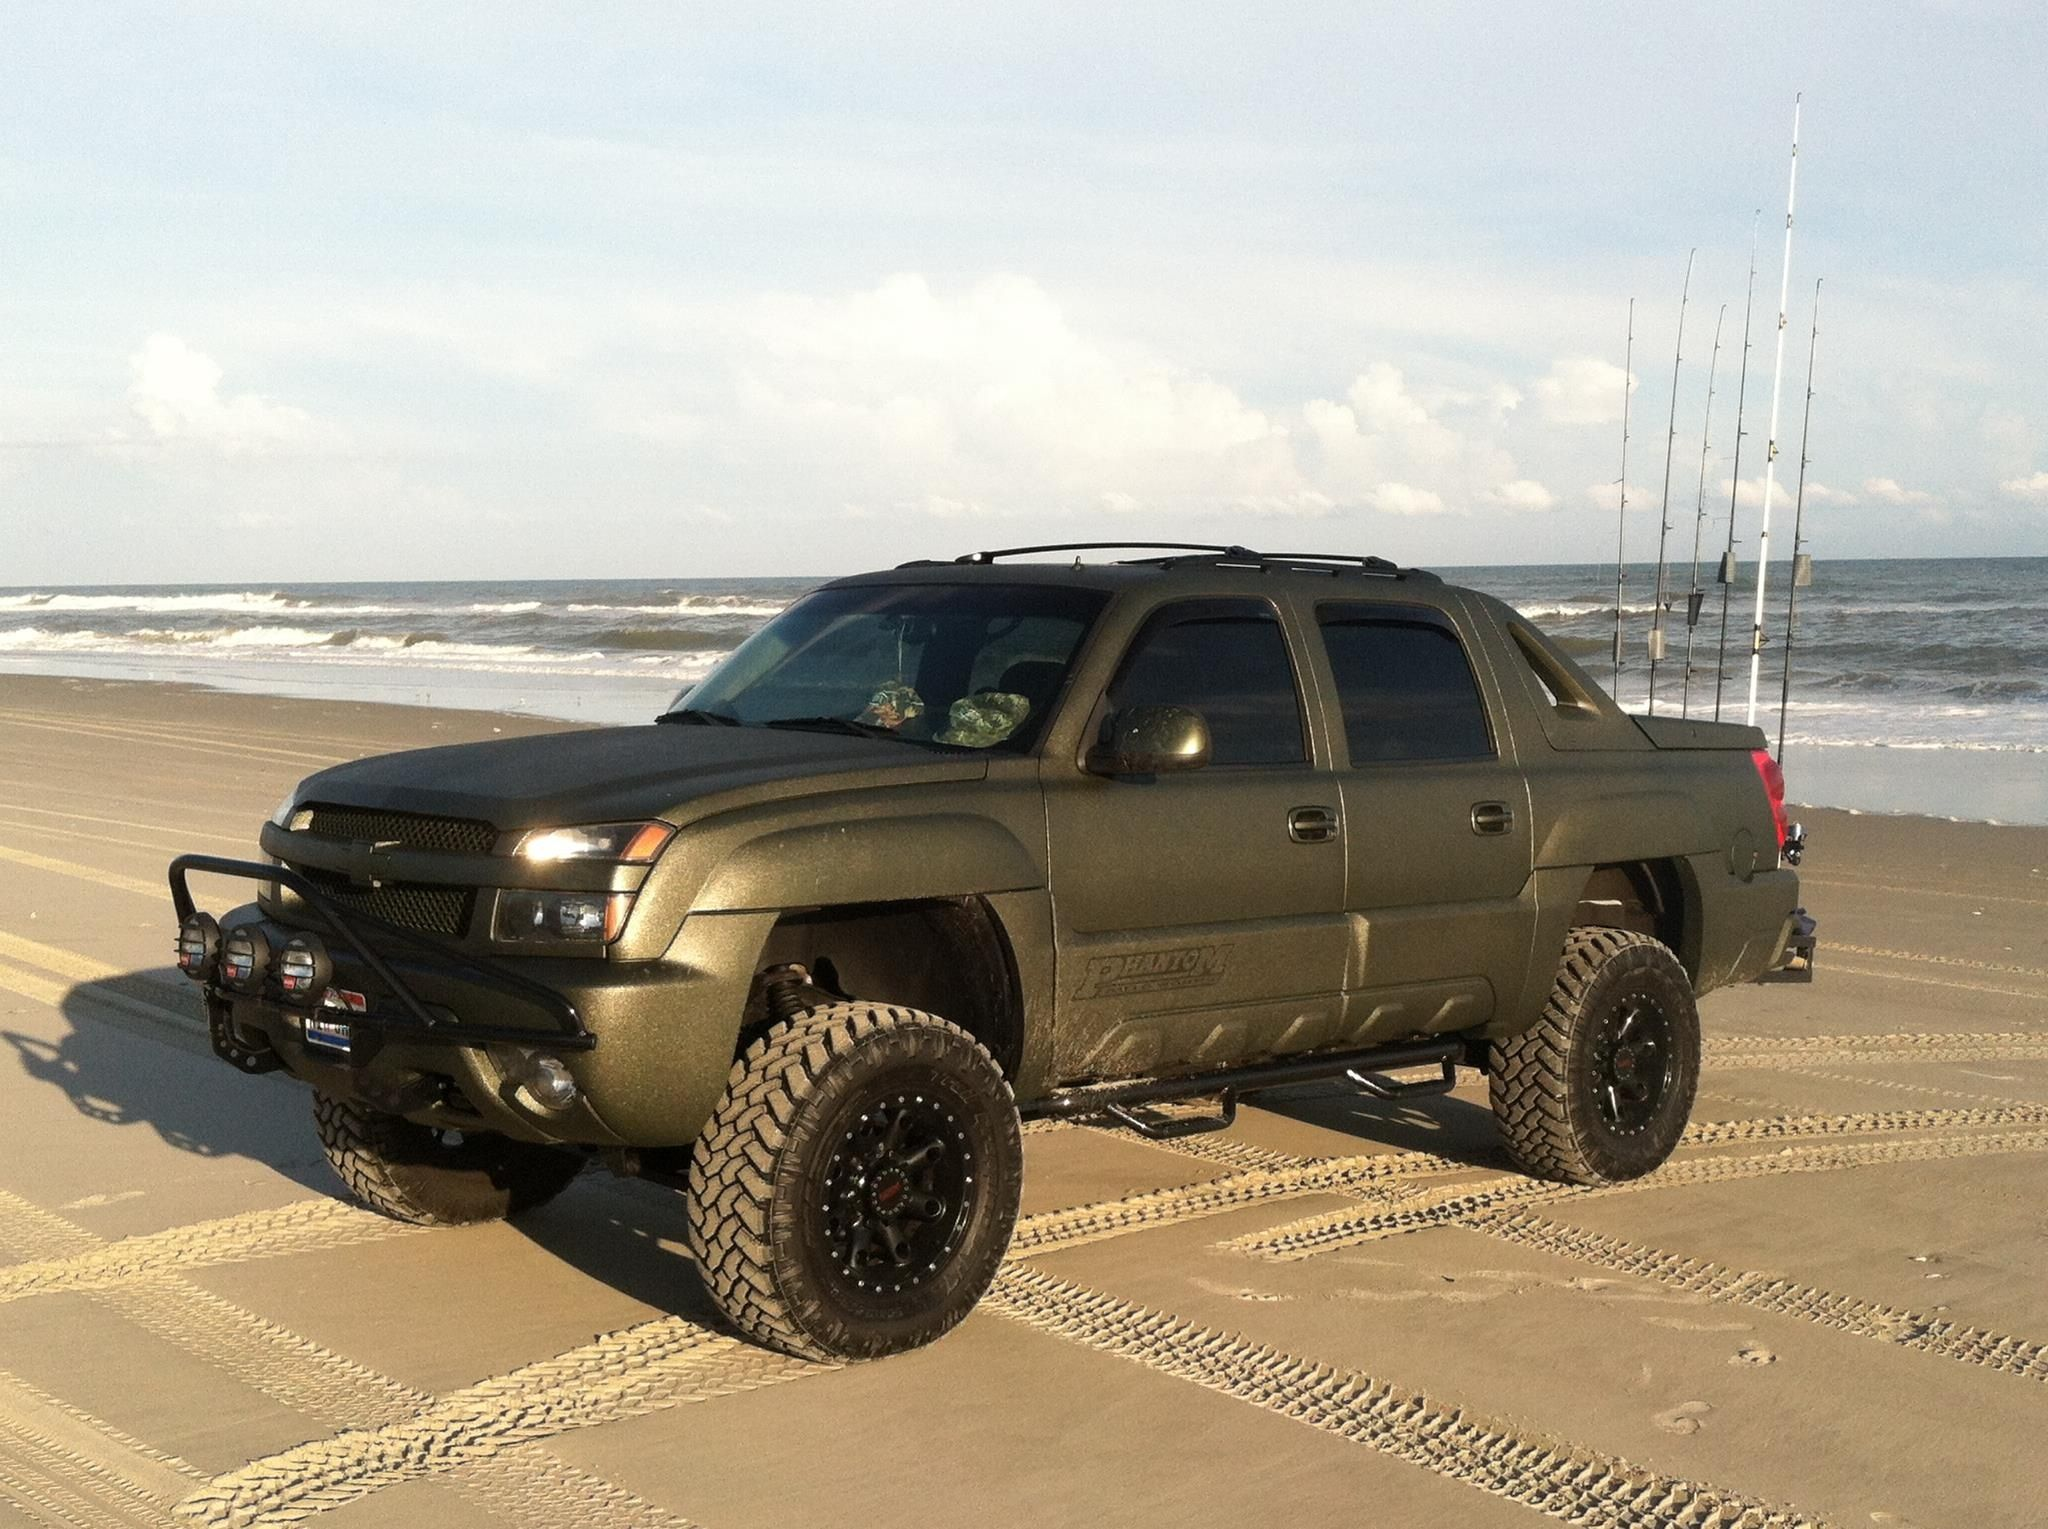 Chevy avalanche off road outdoor by 3dmanipulasi on deviantart amazing cars pinterest chevy avalanche chevy and deviantart